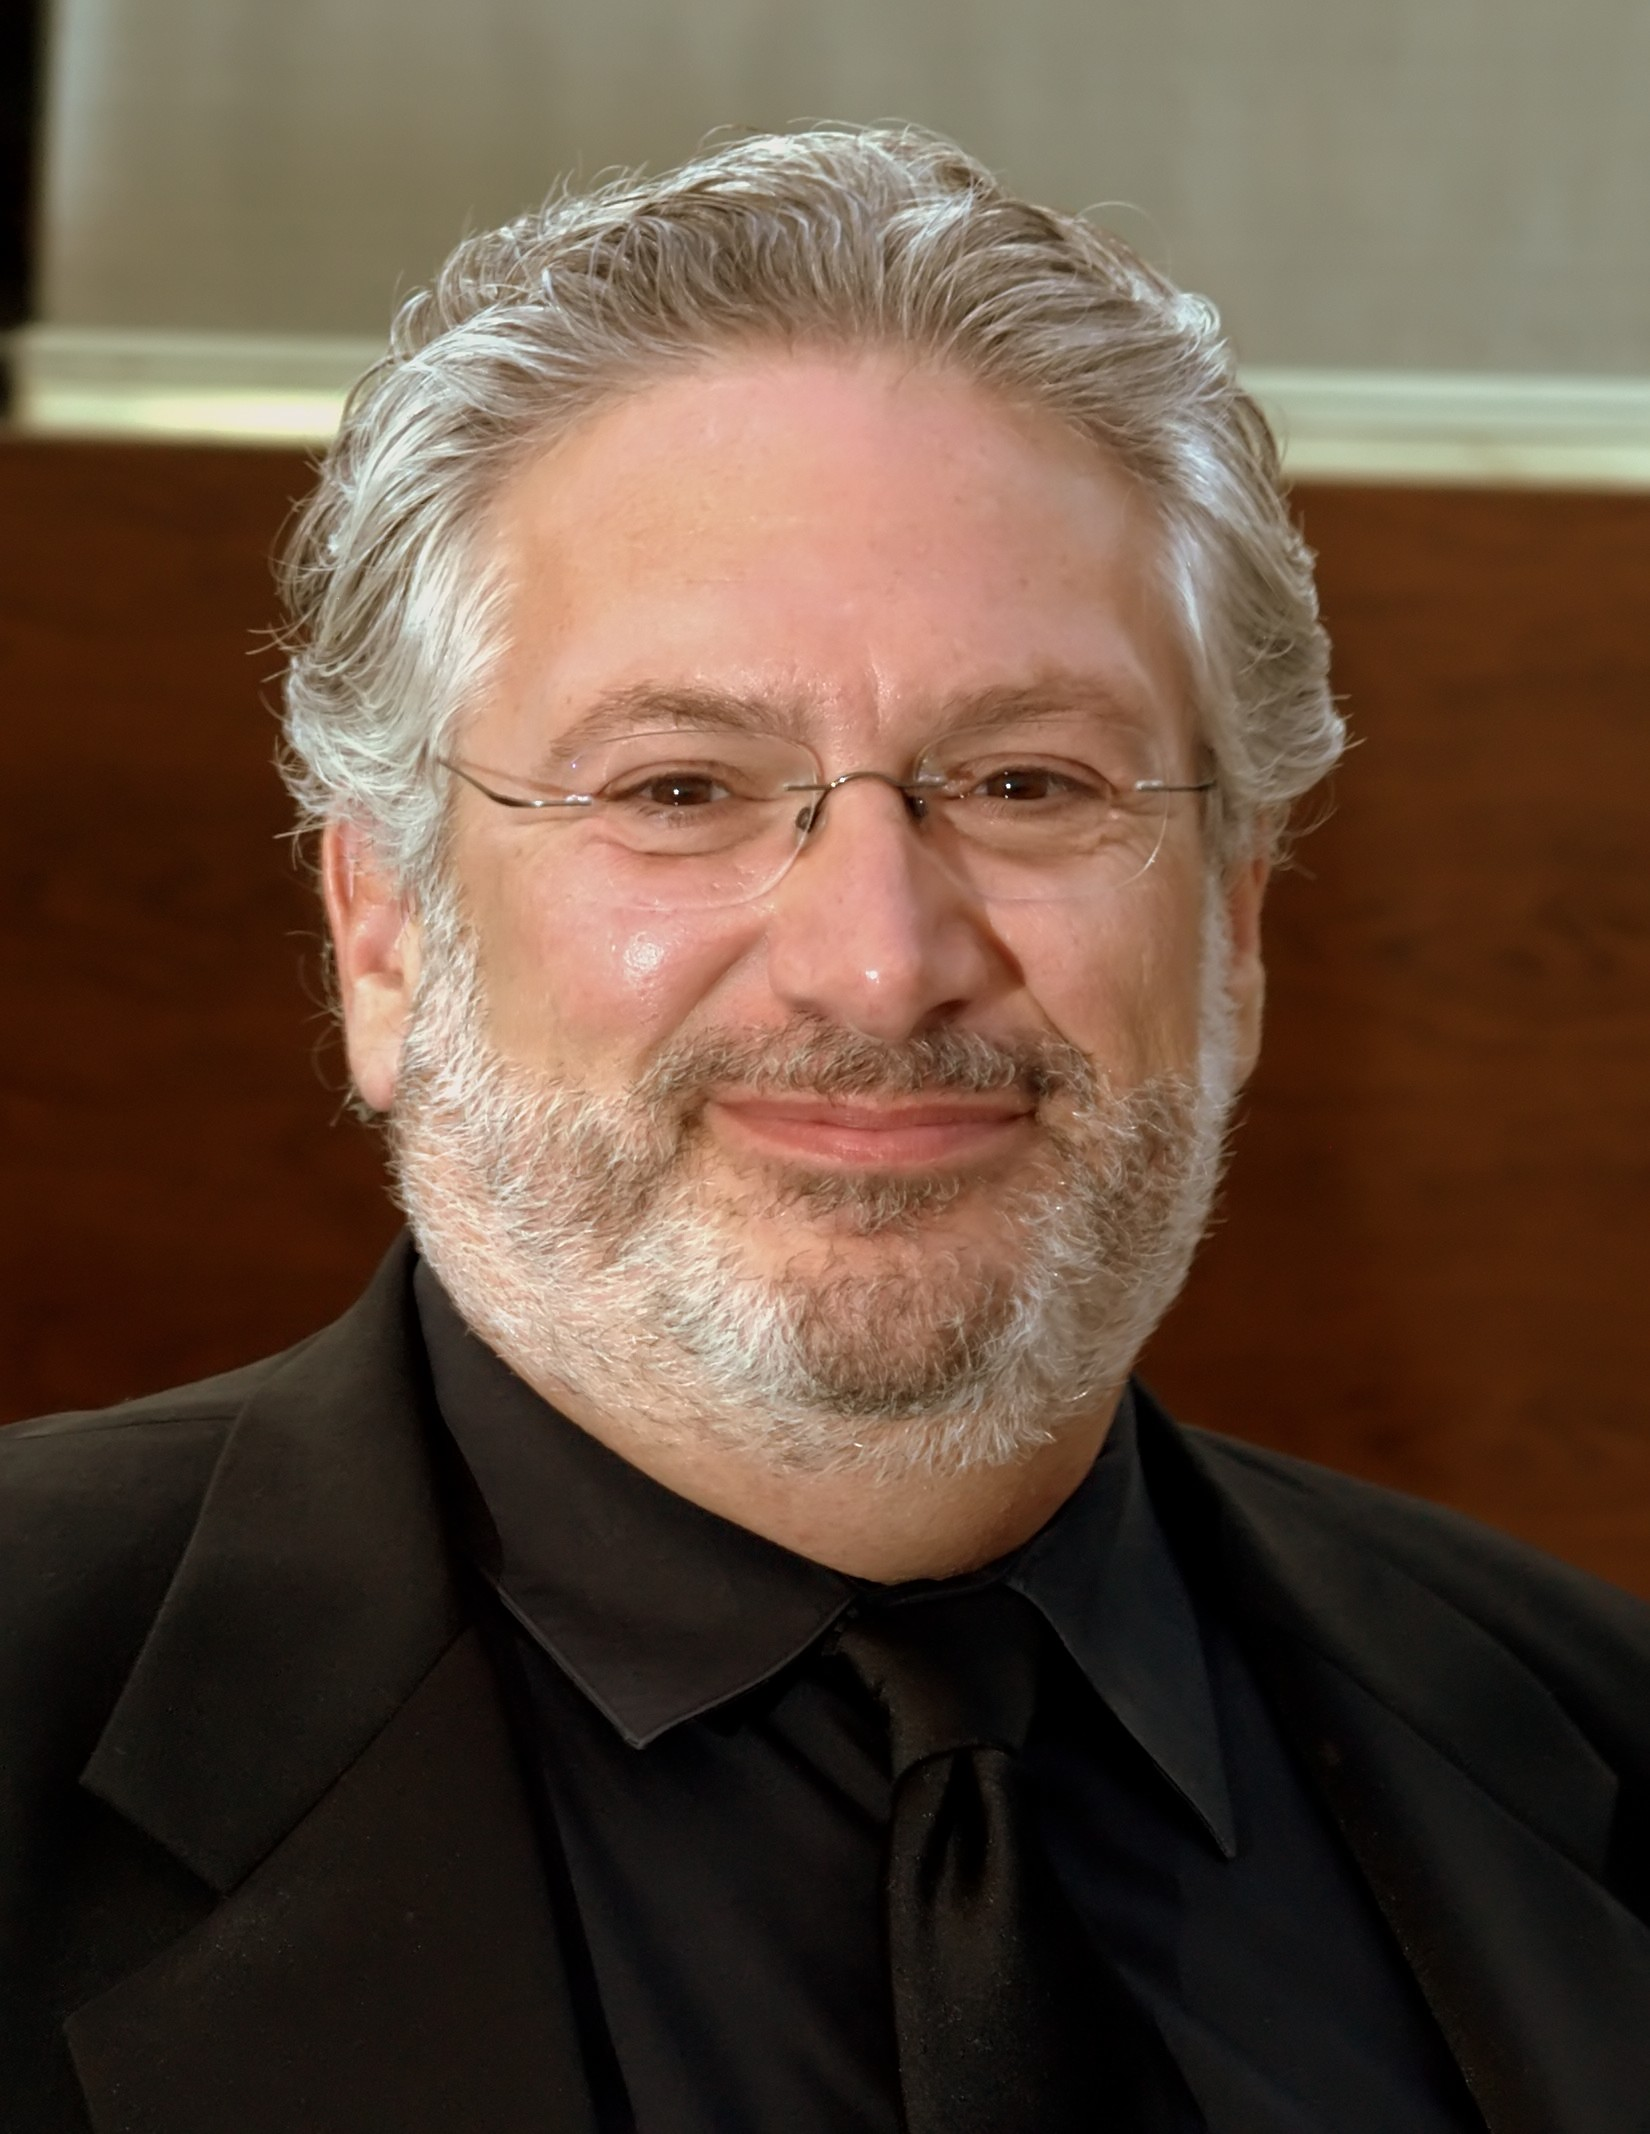 Harvey Fierstein's quote #2